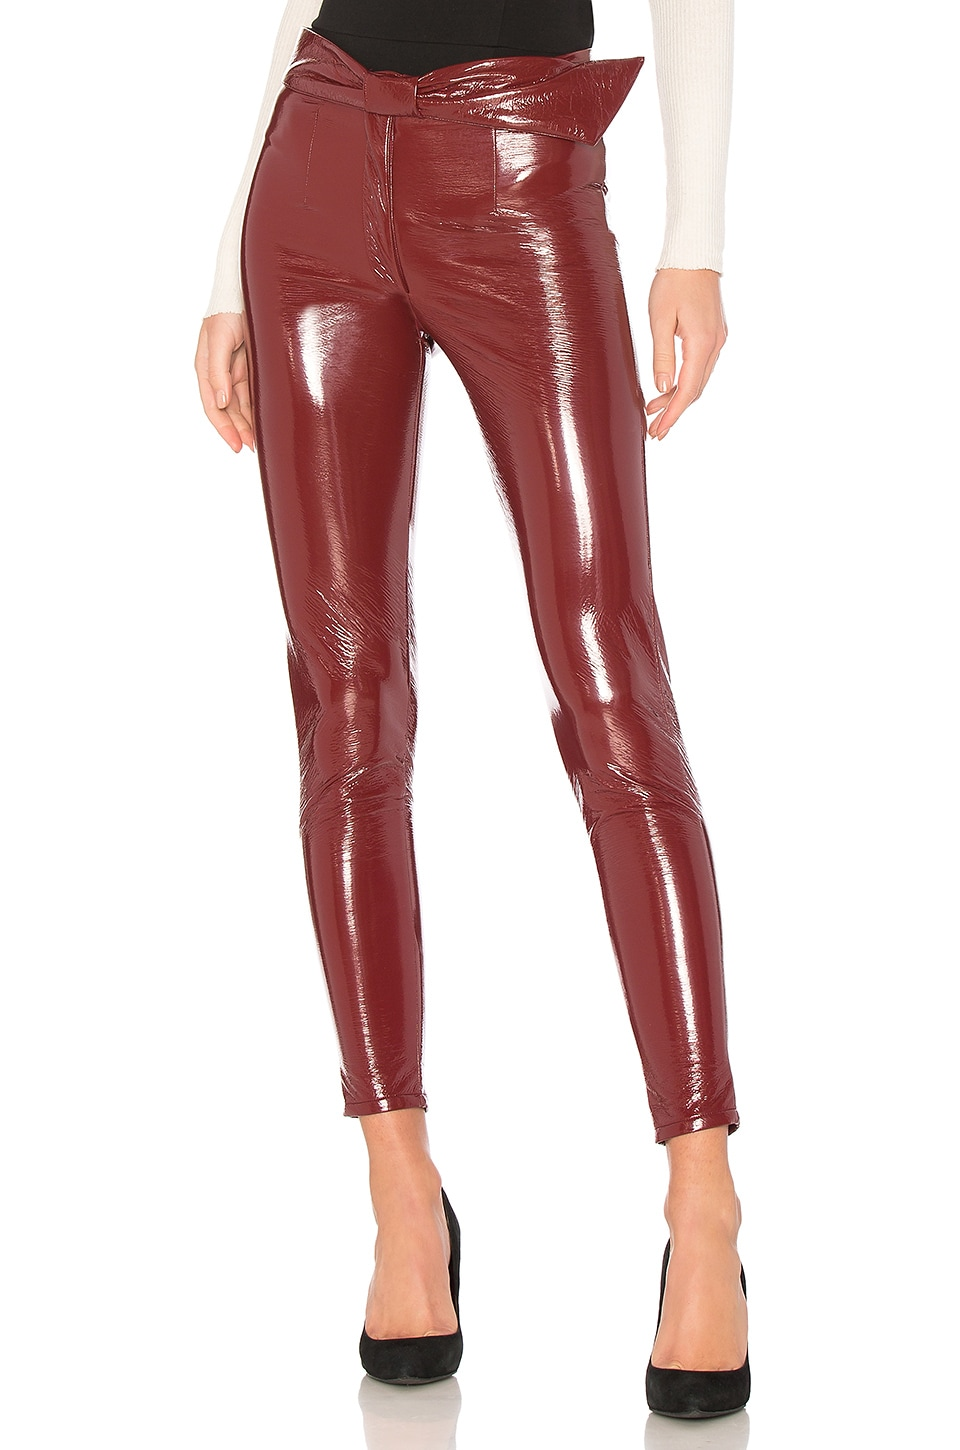 LPA Legging 599 in Cherry